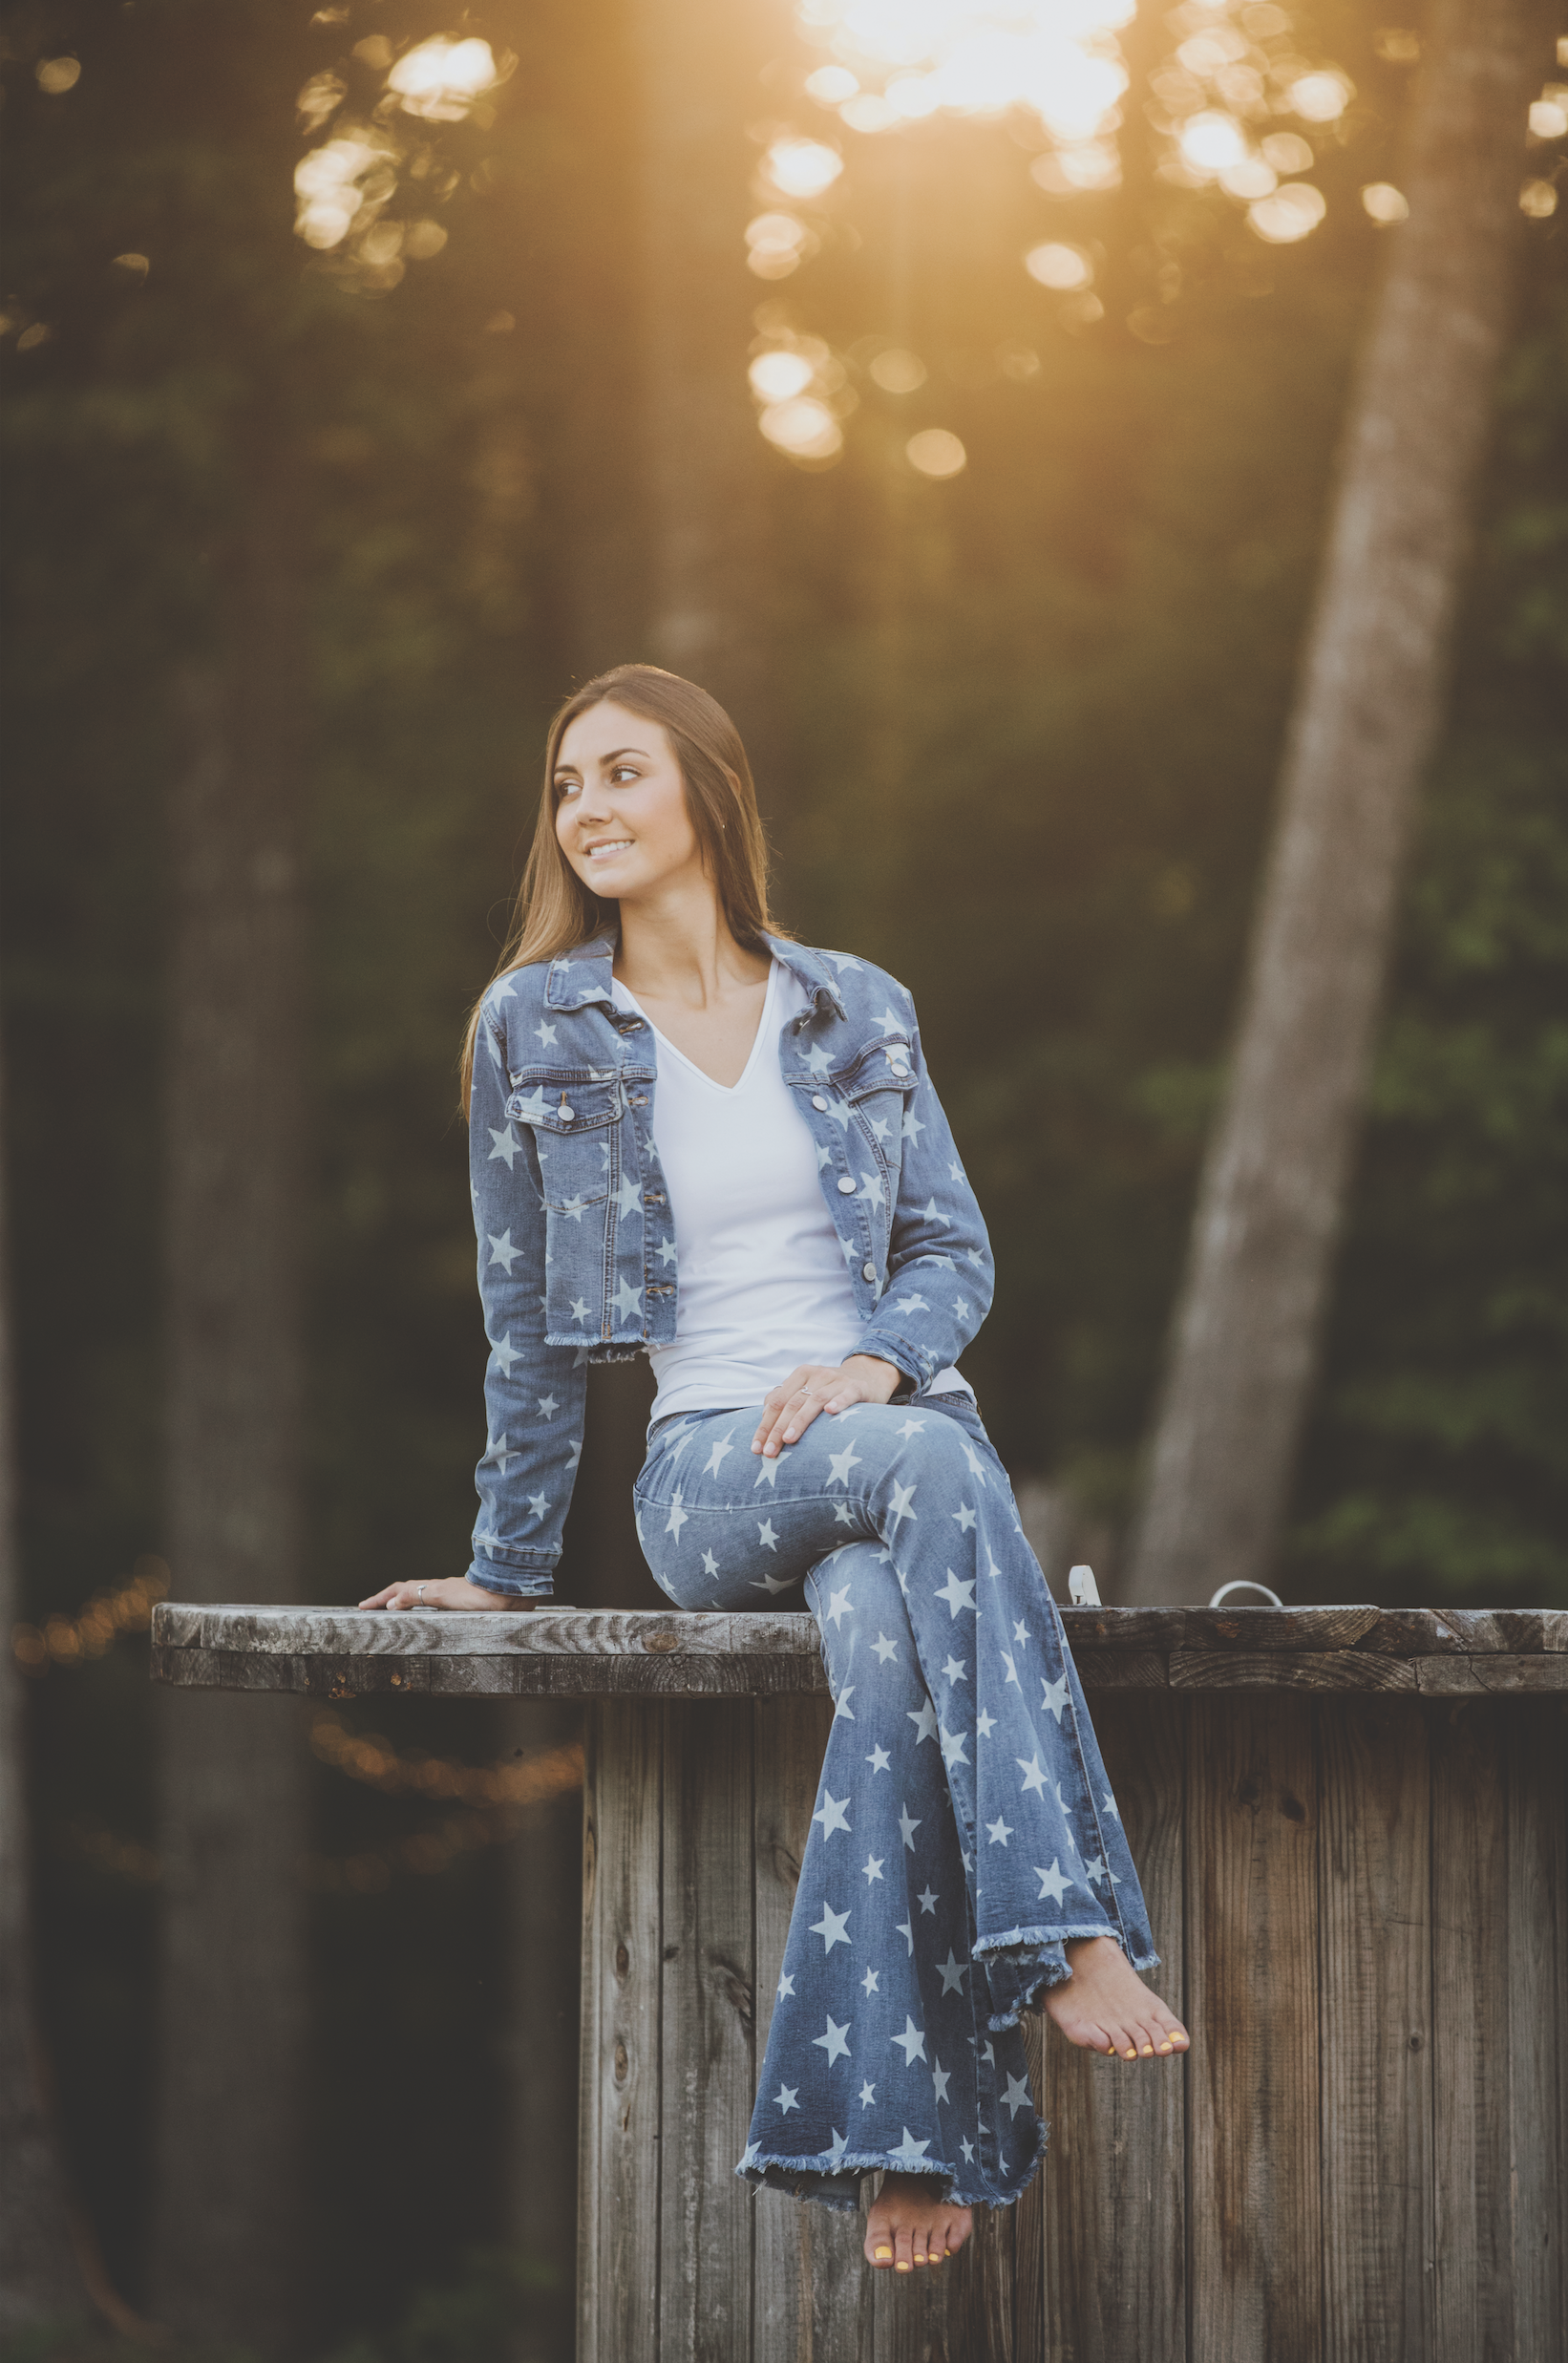 Model Cameron Criminger   Lucy's    1215 Main St, Newberry  denim jacket and flare leg jeans by Judy Blue